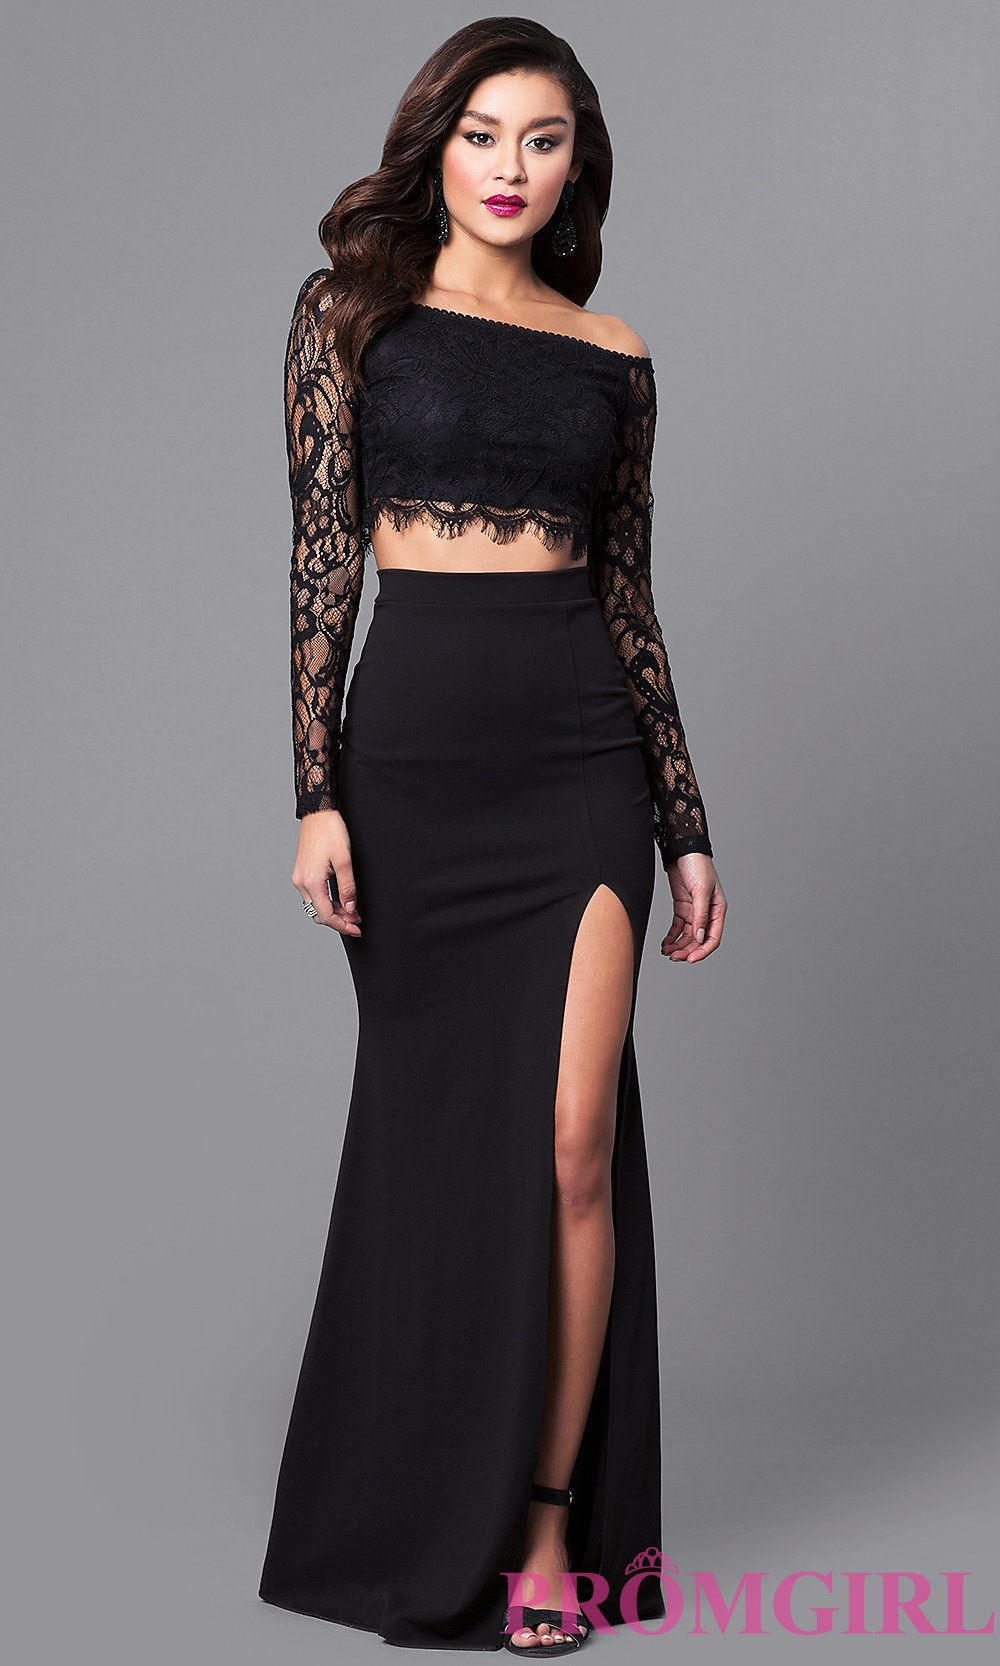 Twopiece lace prom dress with long sheer lace sleeves has an off